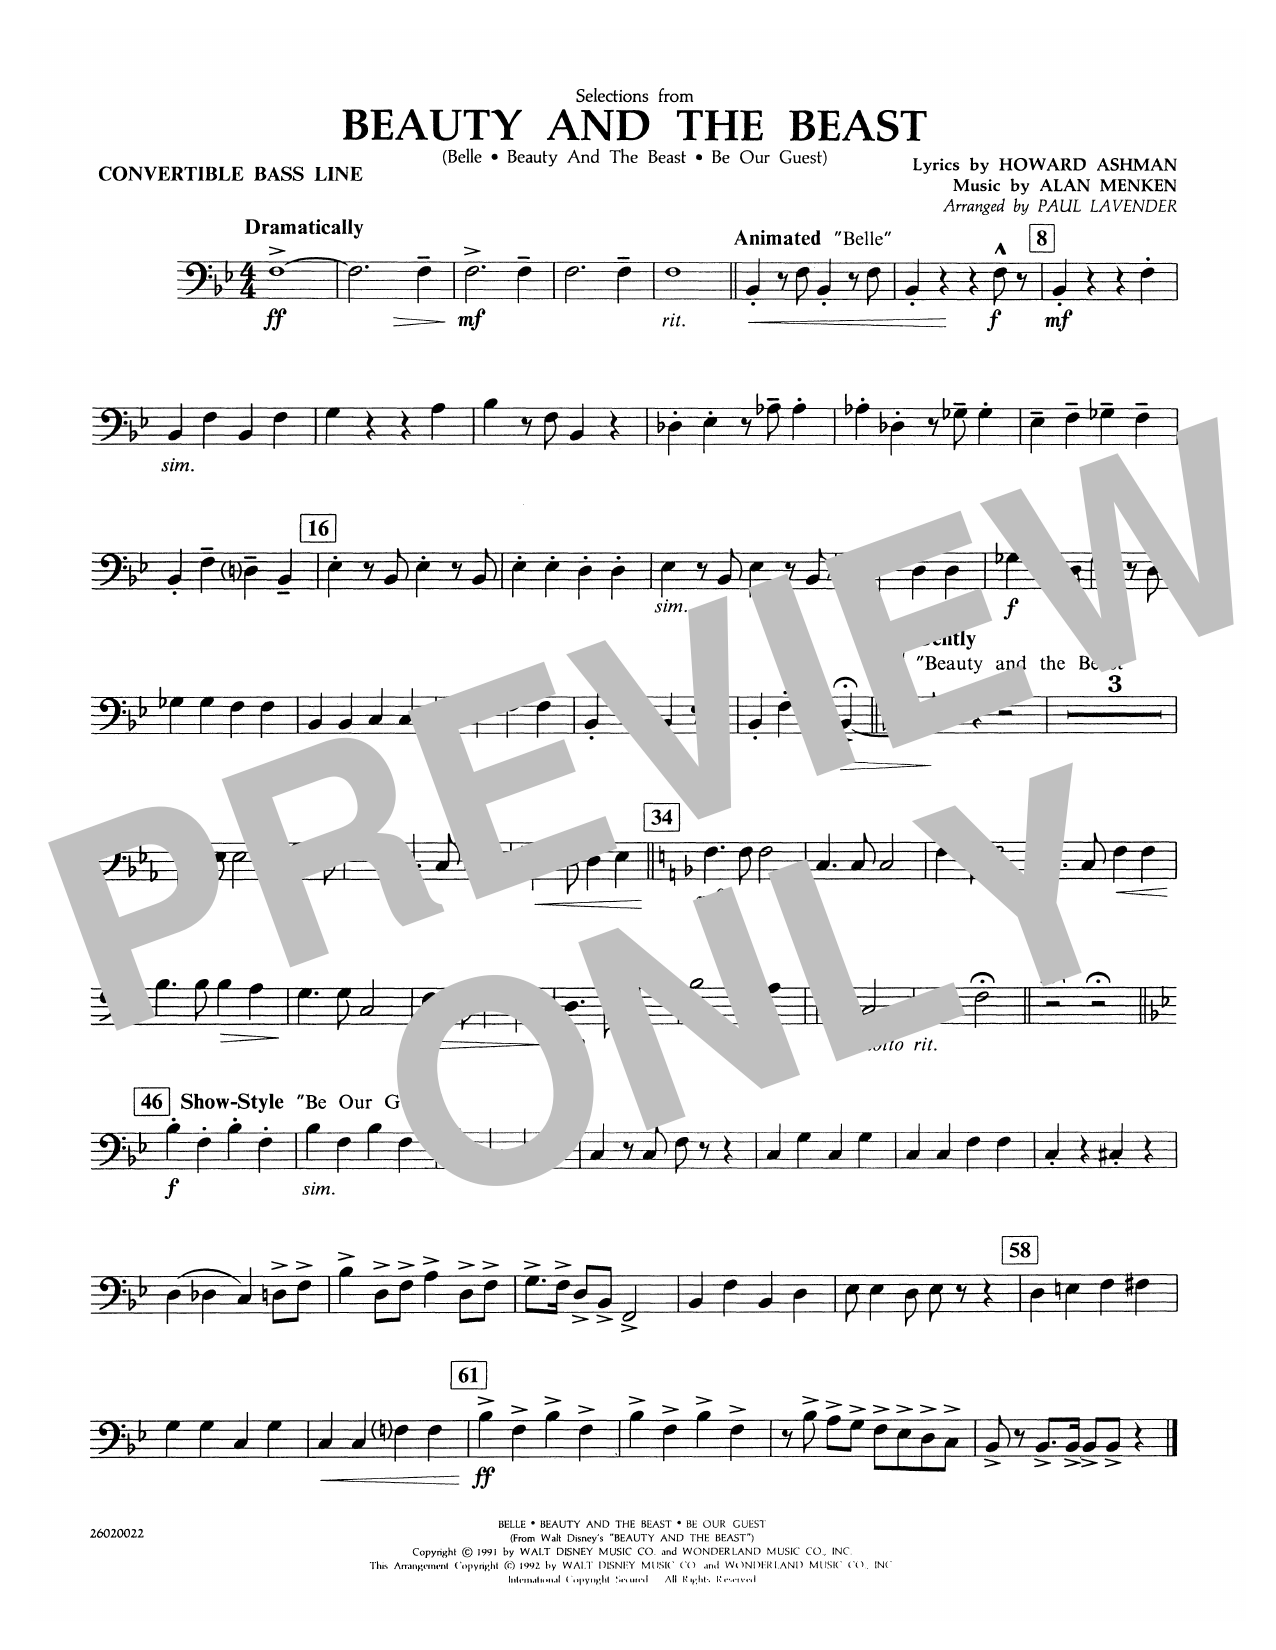 Selections from Beauty and the Beast - Convertible Bass Line (Concert Band)